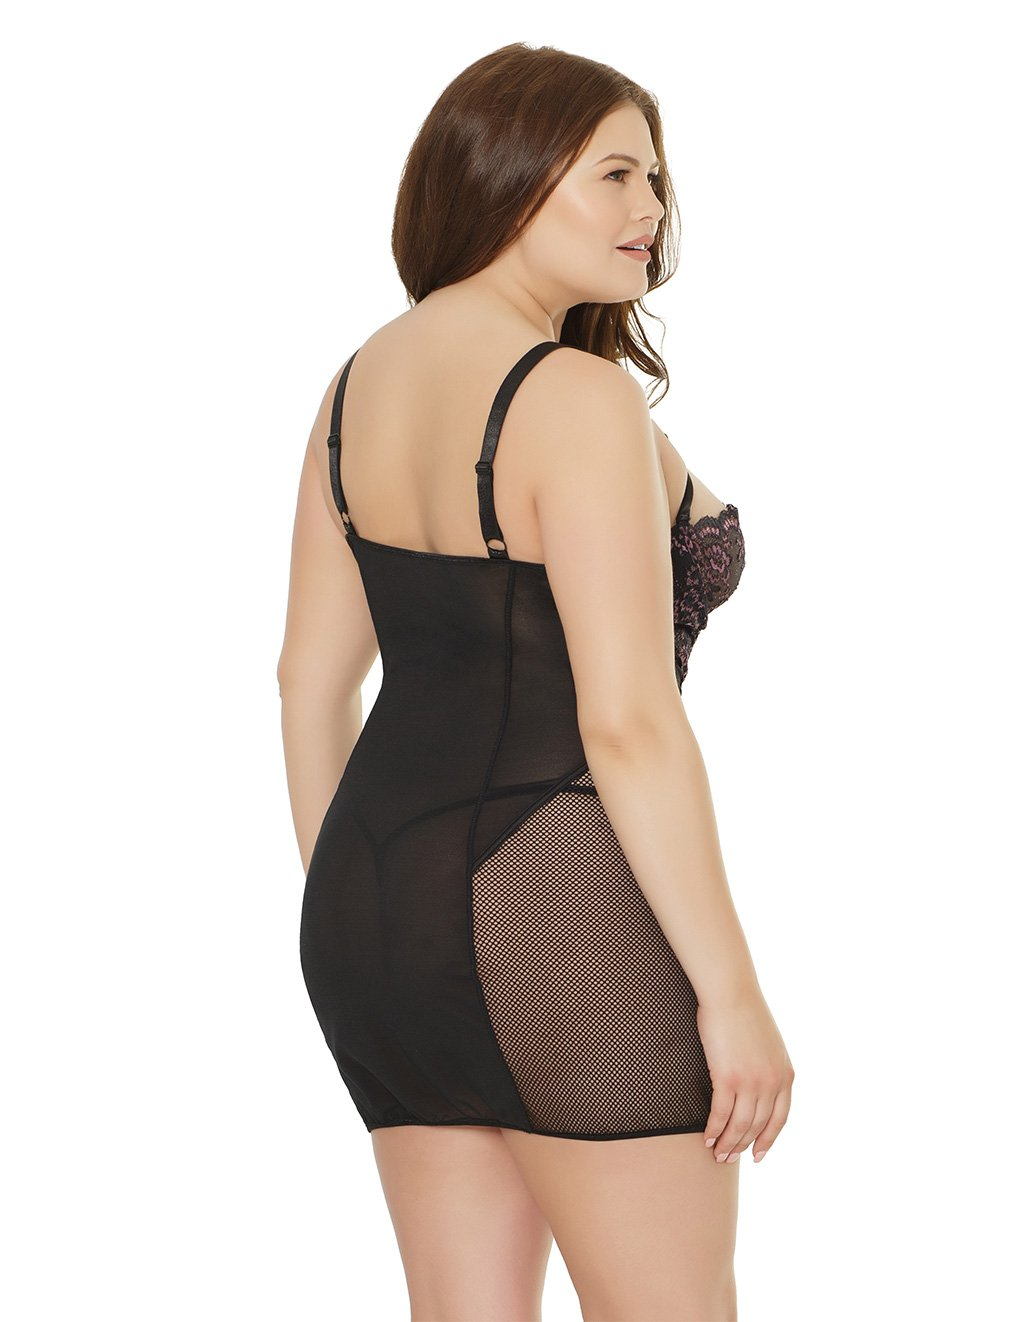 Coquette Lace And Mesh Panel Chemise Plus Size Studio Back